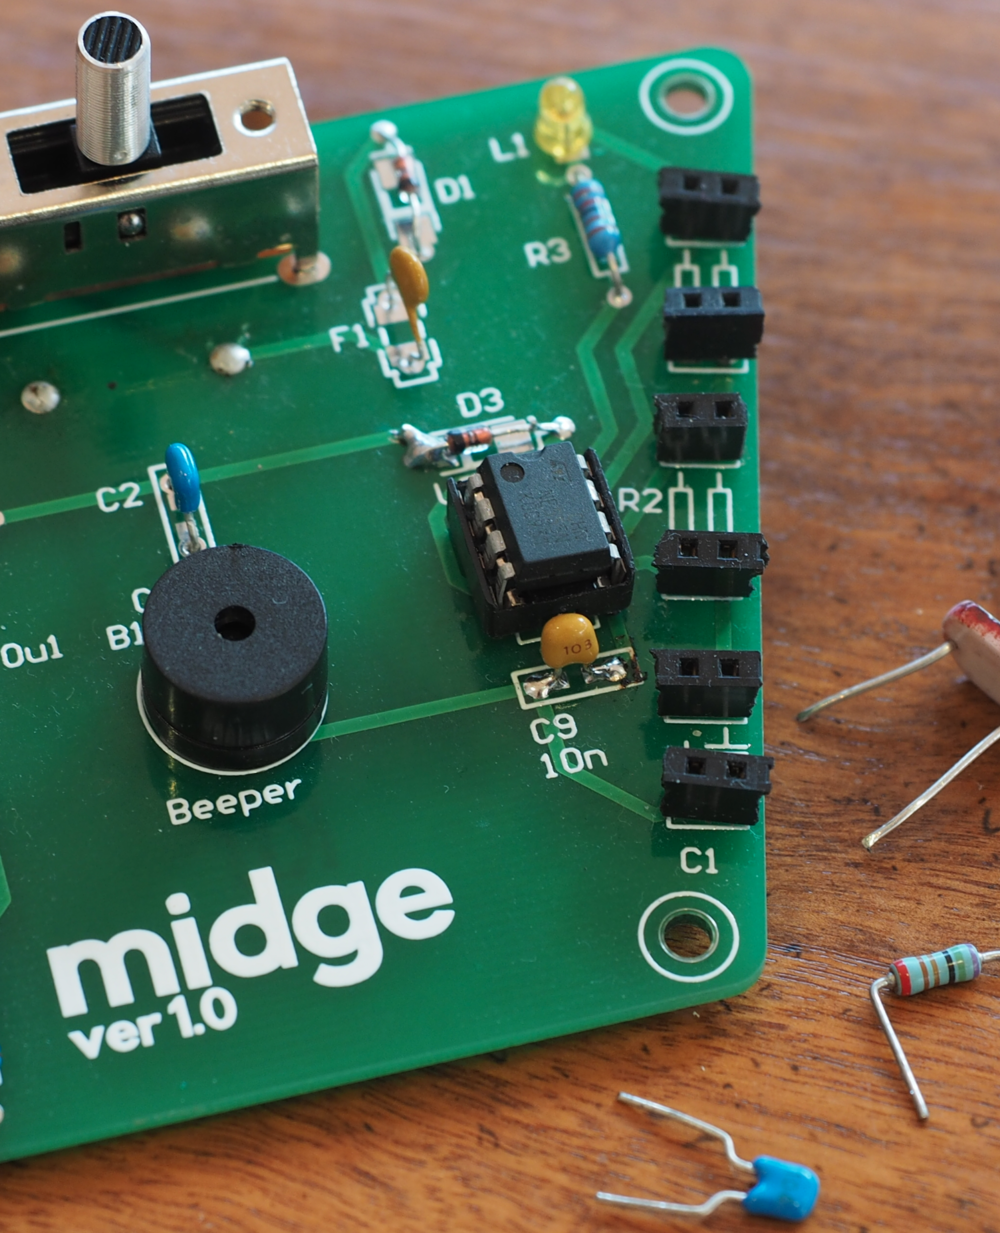 The 'midge' synthesizer